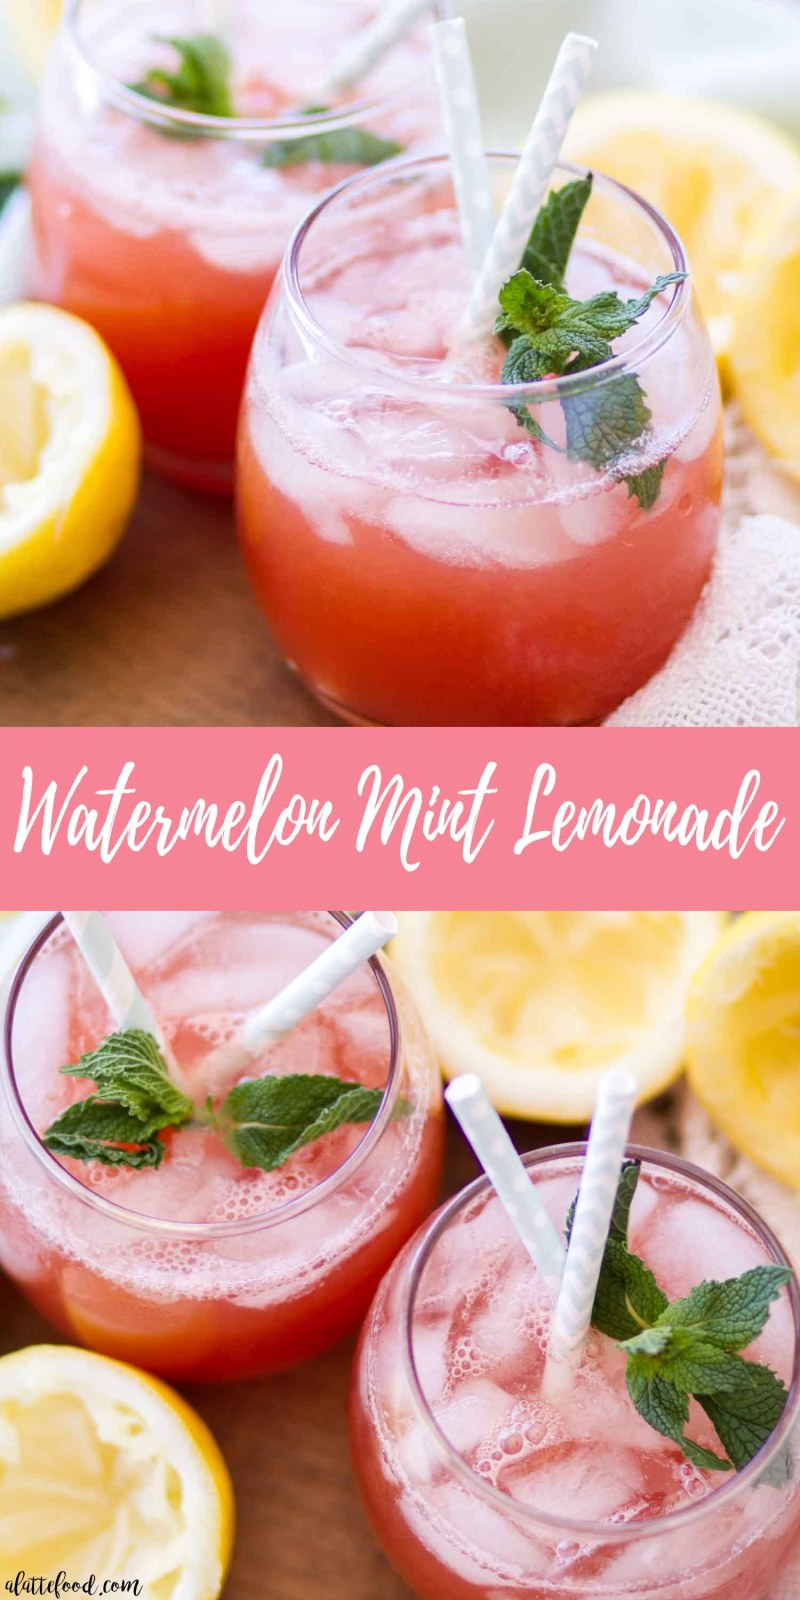 Watermelon Mint Lemonade collage with text